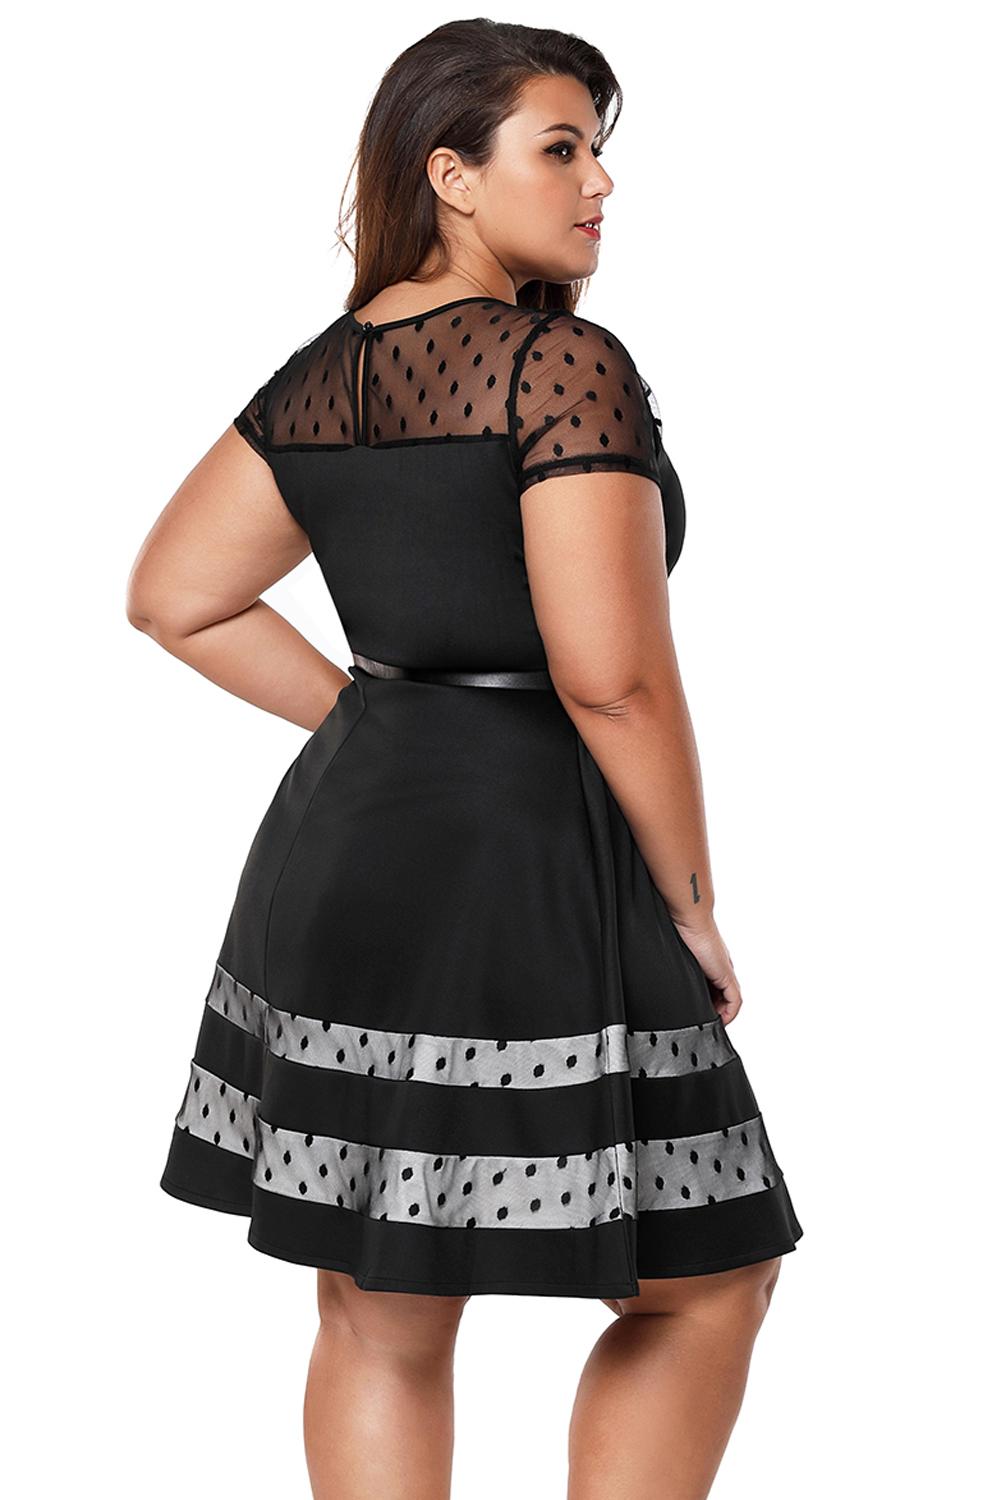 936917d9a38 Black dotted mesh insert flare plus size dress with belt women crew ...